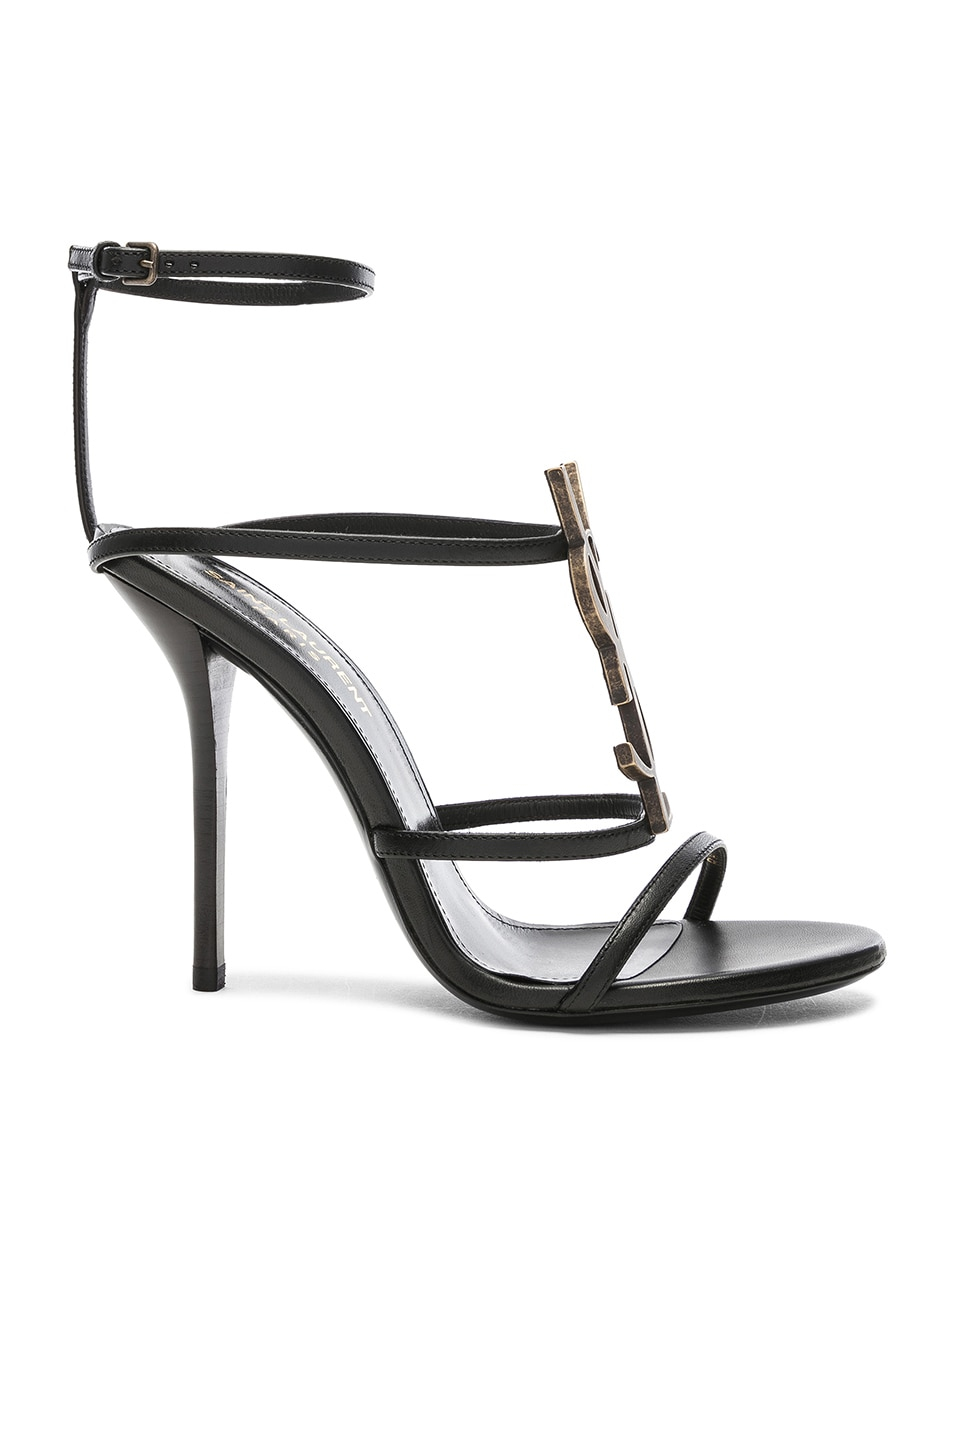 Image 1 of Saint Laurent Cassandra Monogramme Sandals in Black